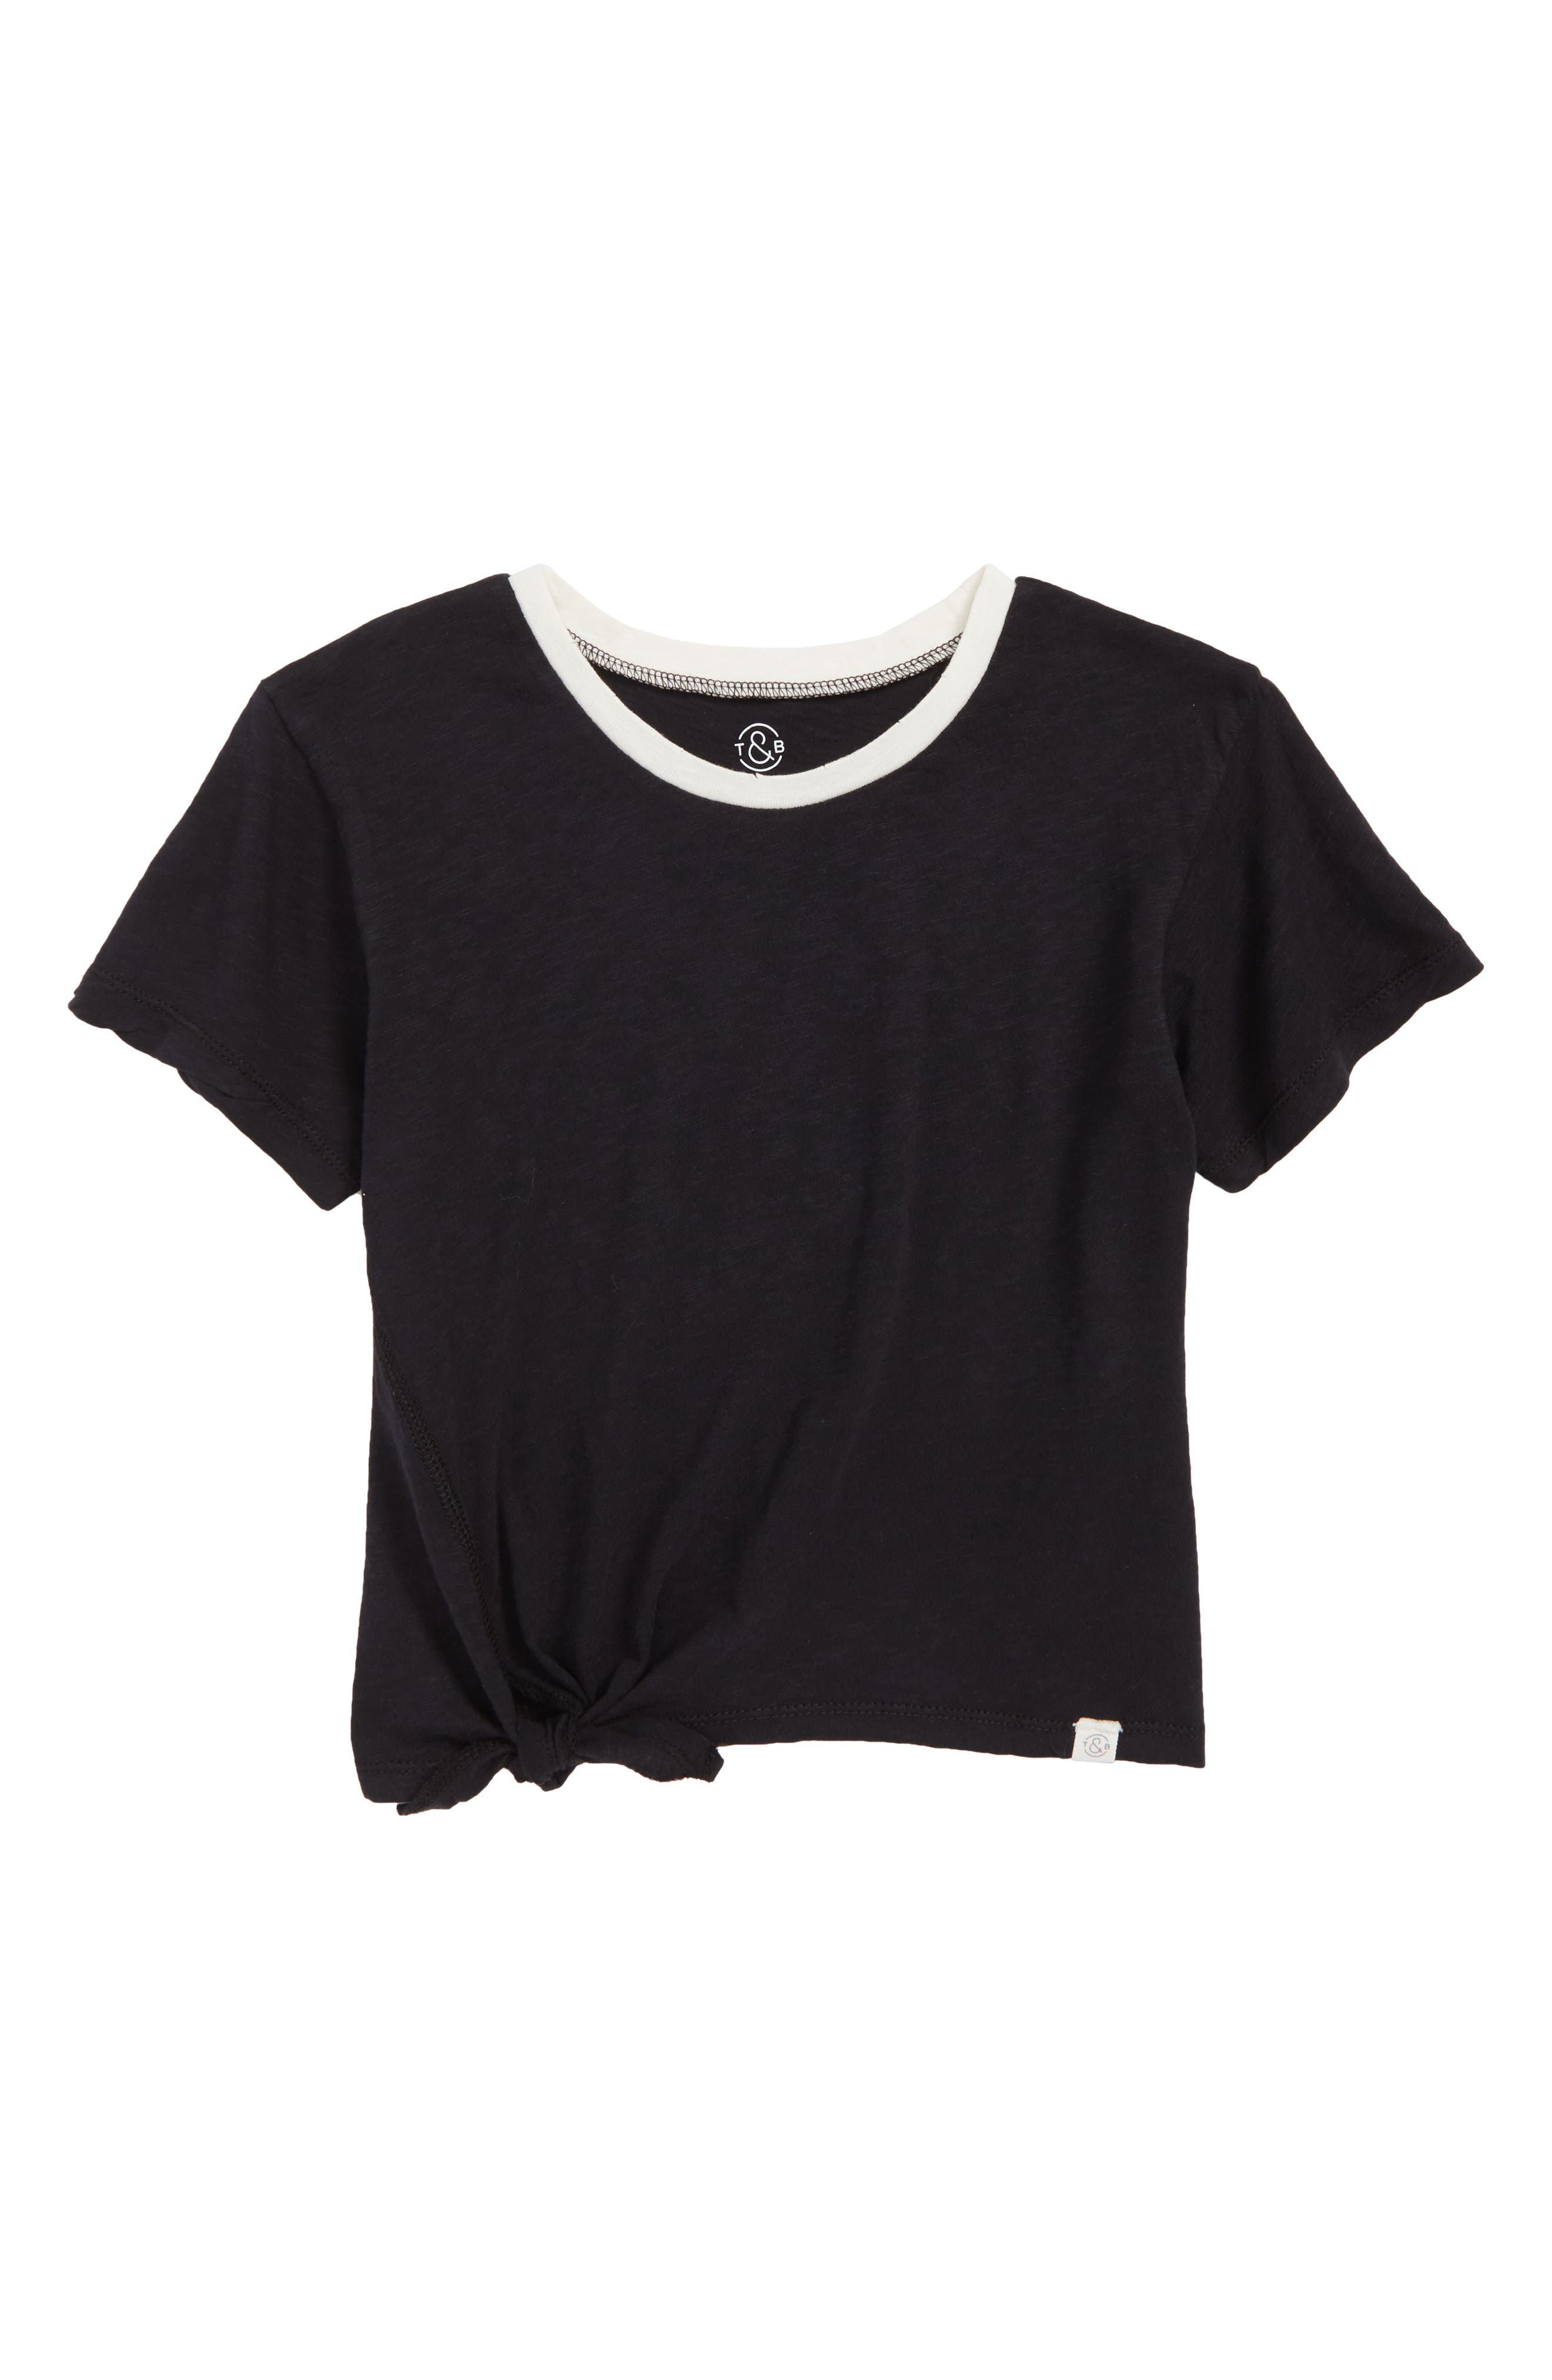 Knotted Ringer Tee,                             Main thumbnail 1, color,                             001